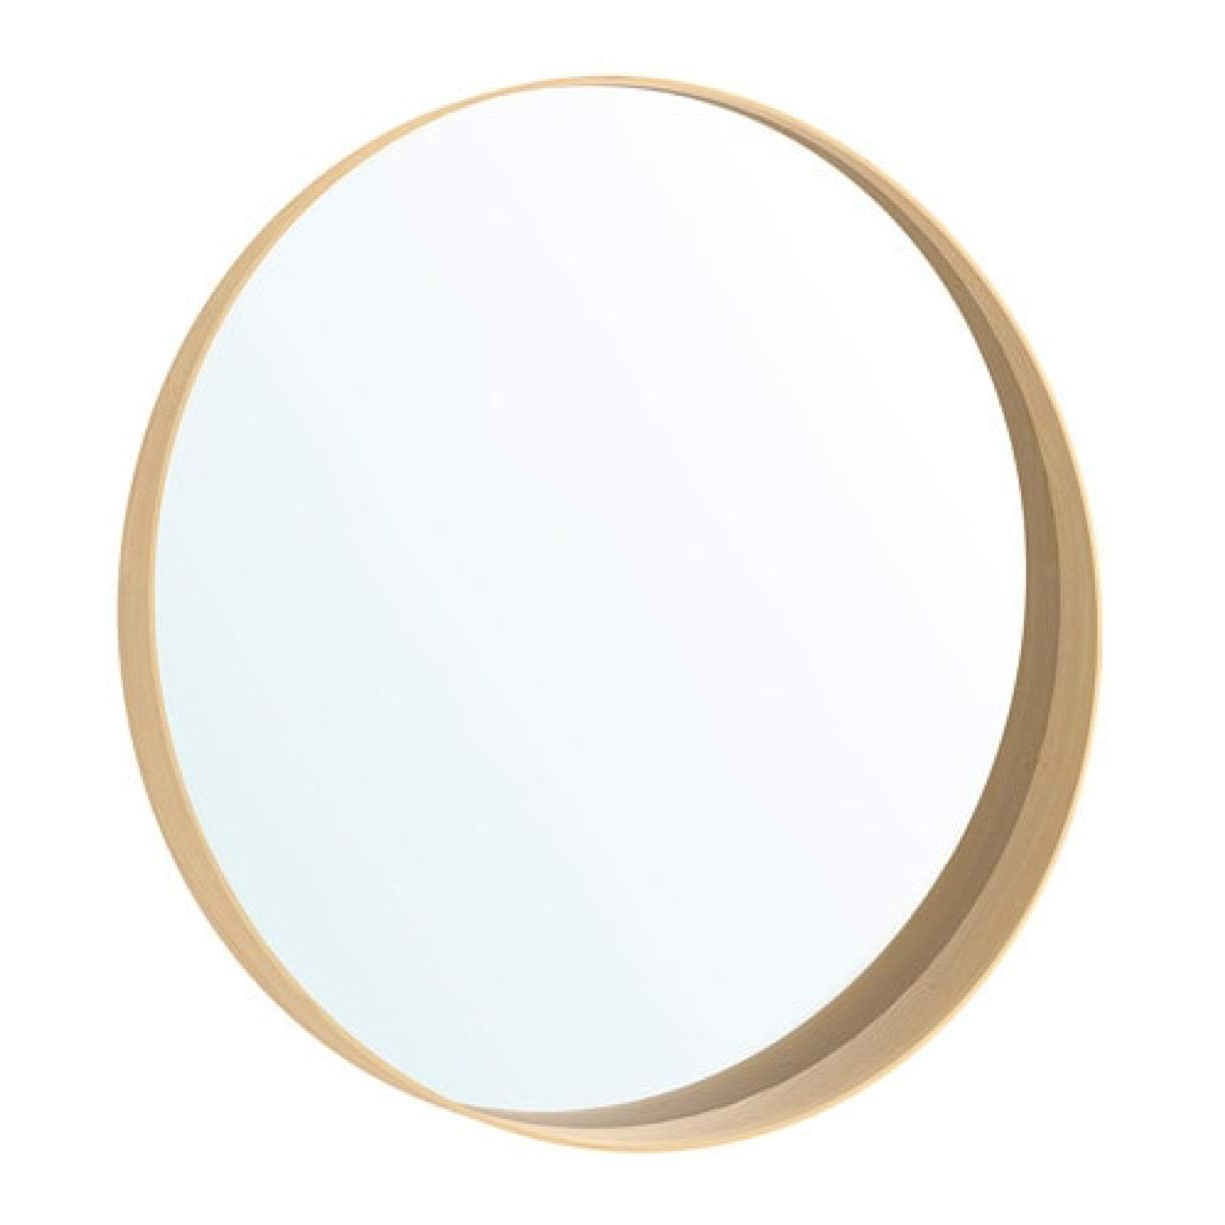 Ikea Round Wall Mirrors Pertaining To Preferred Ikea Stockholm Wall Mirror, Walnut Veneer 602. (View 4 of 20)